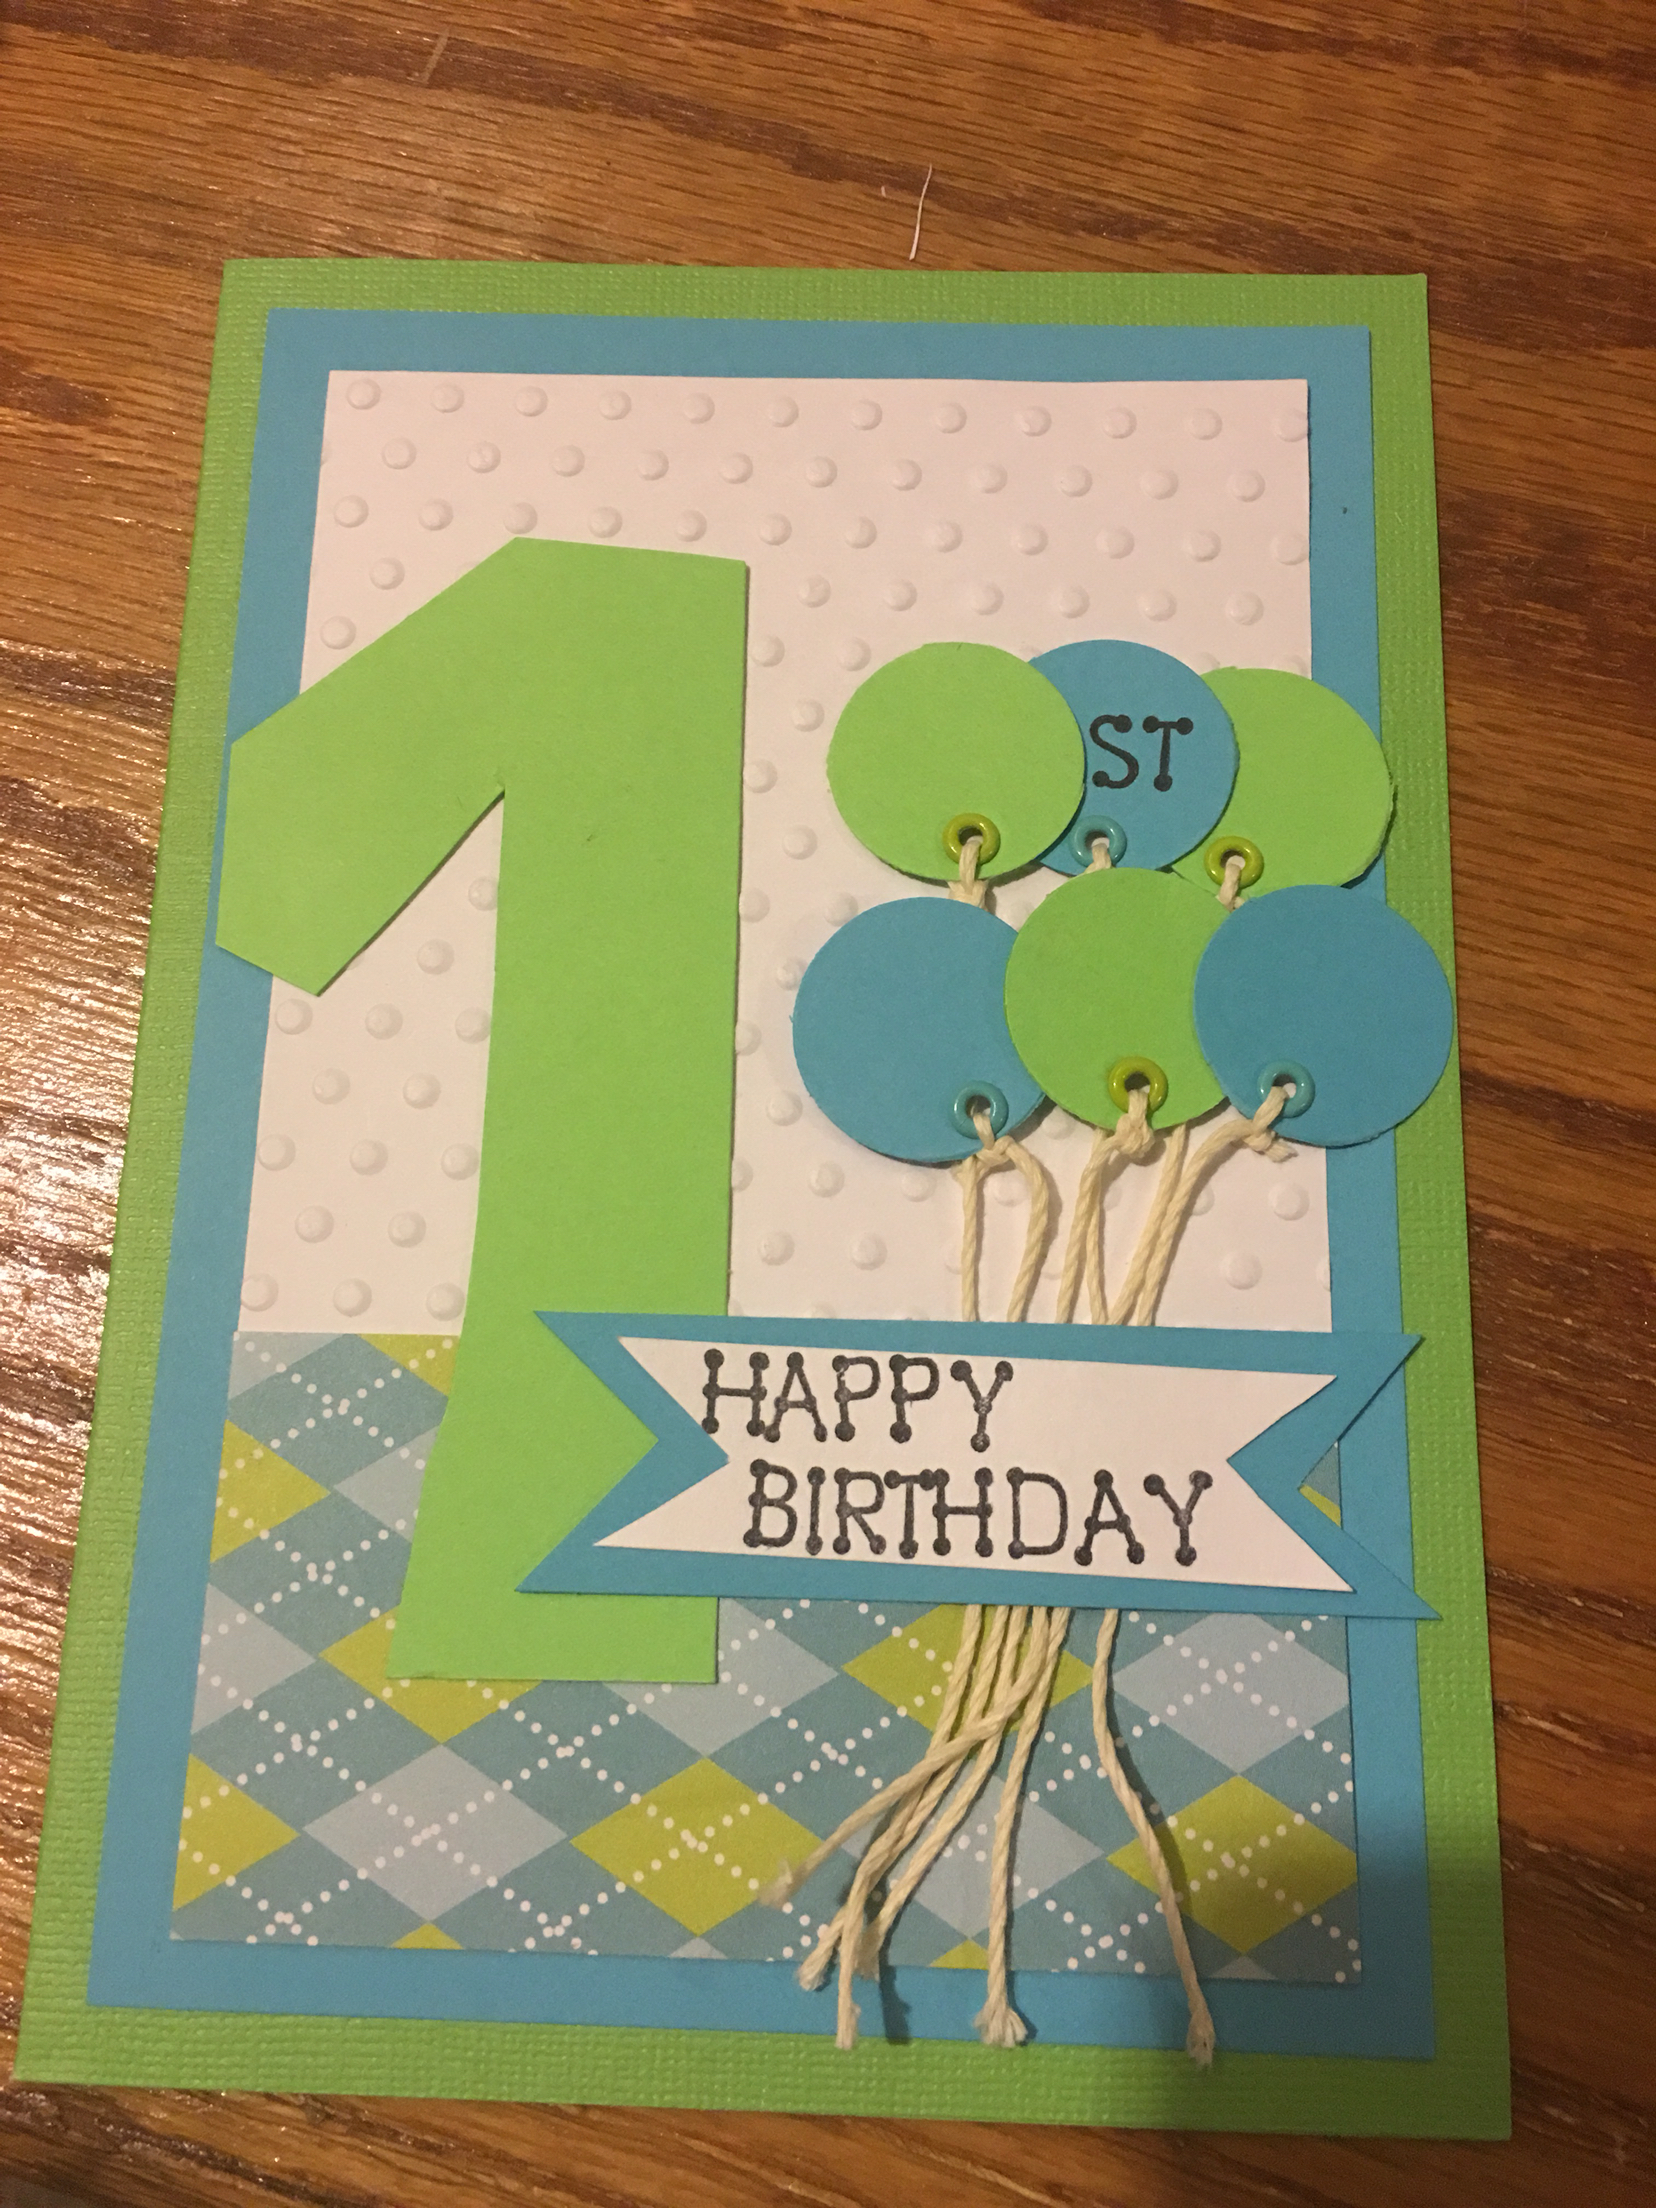 birthday card message for 3 year old boy ; birthday-card-message-for-3-year-old-boy-fb95c1872f58309294d16d566e8be906